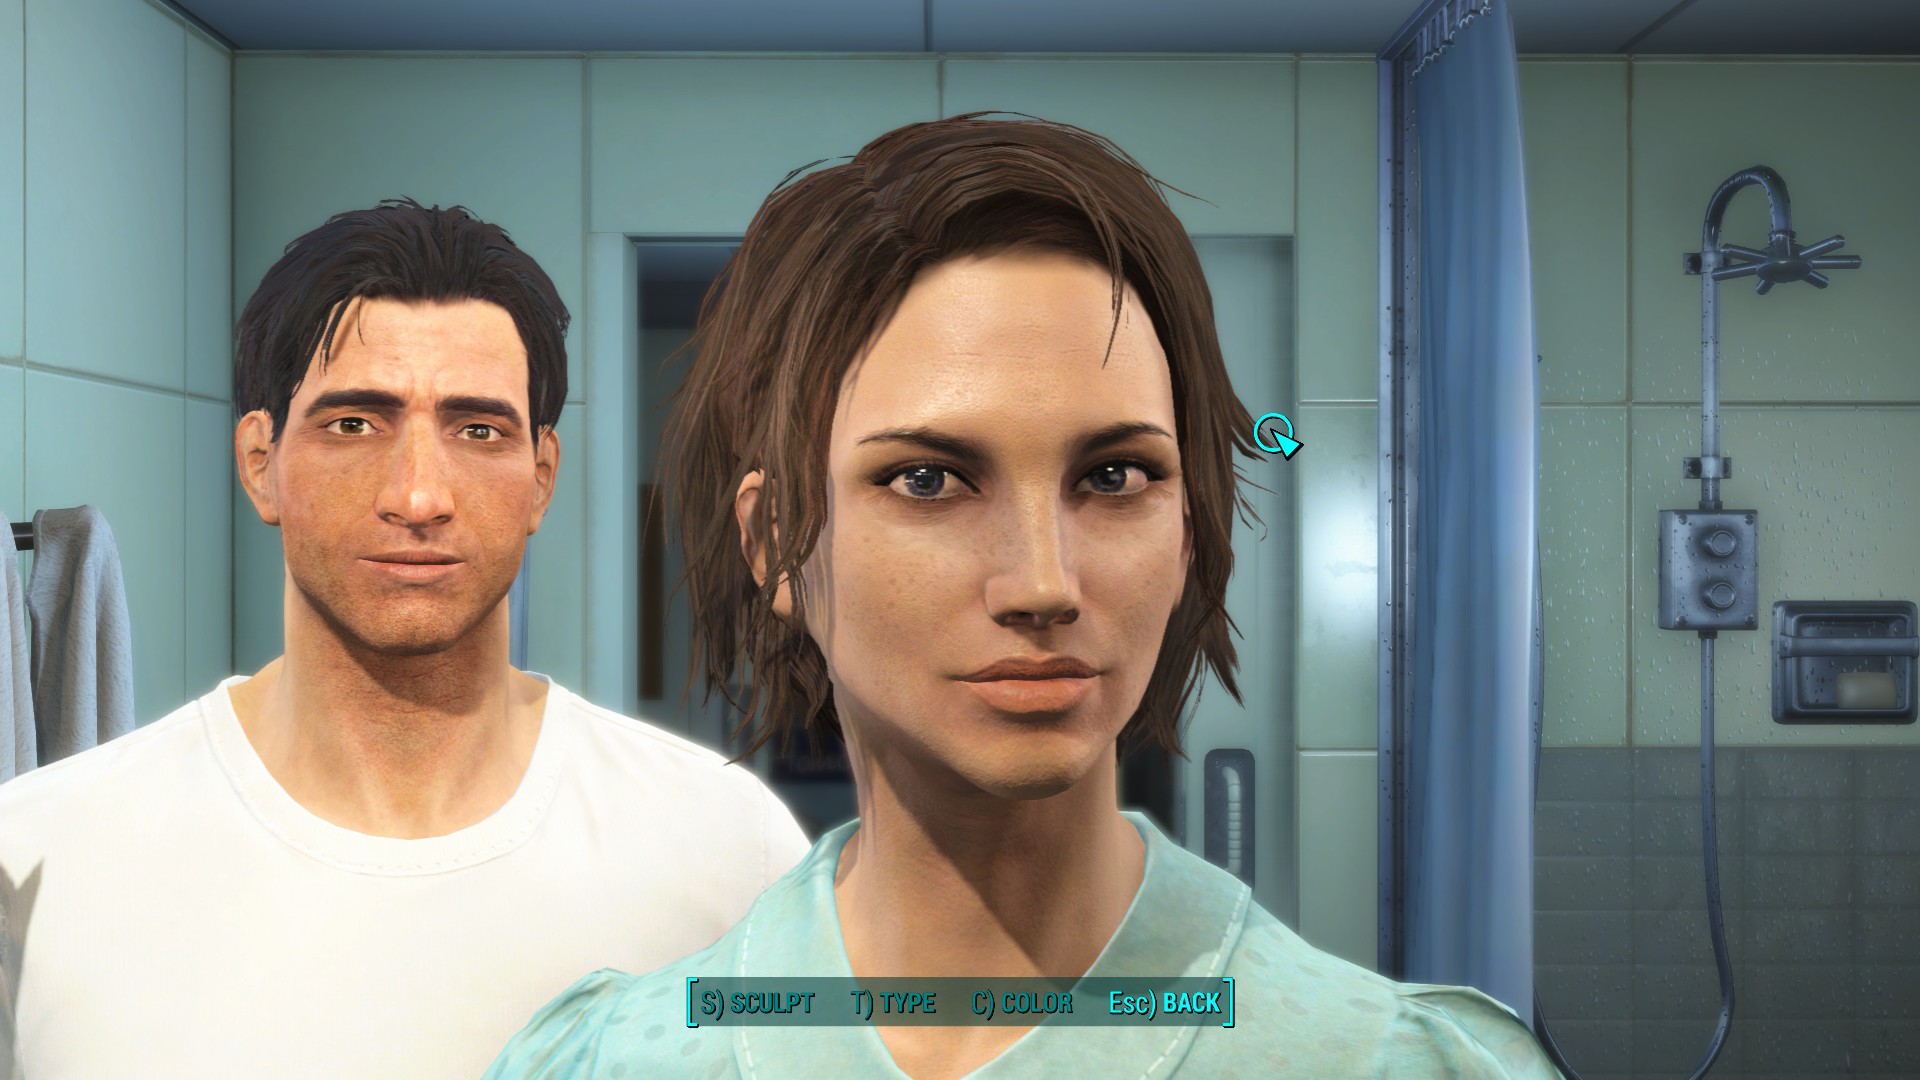 How to make a fallout 4 character that isnt butt ugly siliconangle fallout 4 character creation final solutioingenieria Image collections